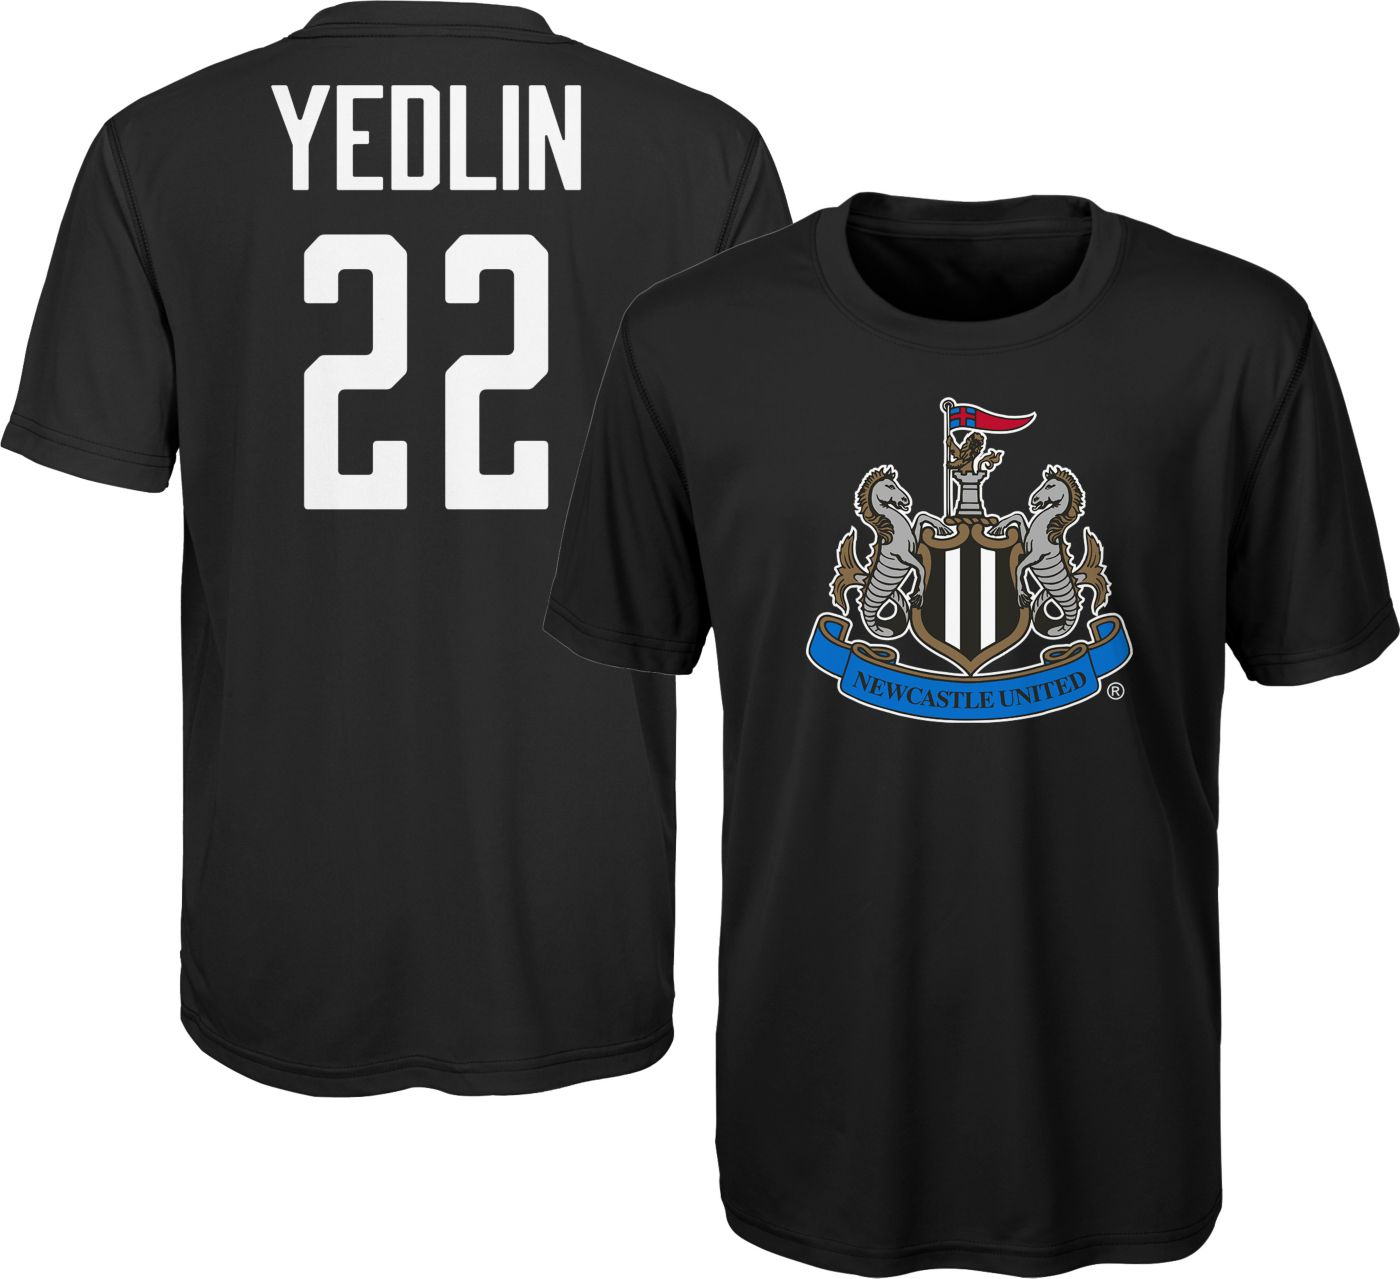 Outerstuff Youth Newcastle United DeAndre Yedlin #22 Black Player Tee